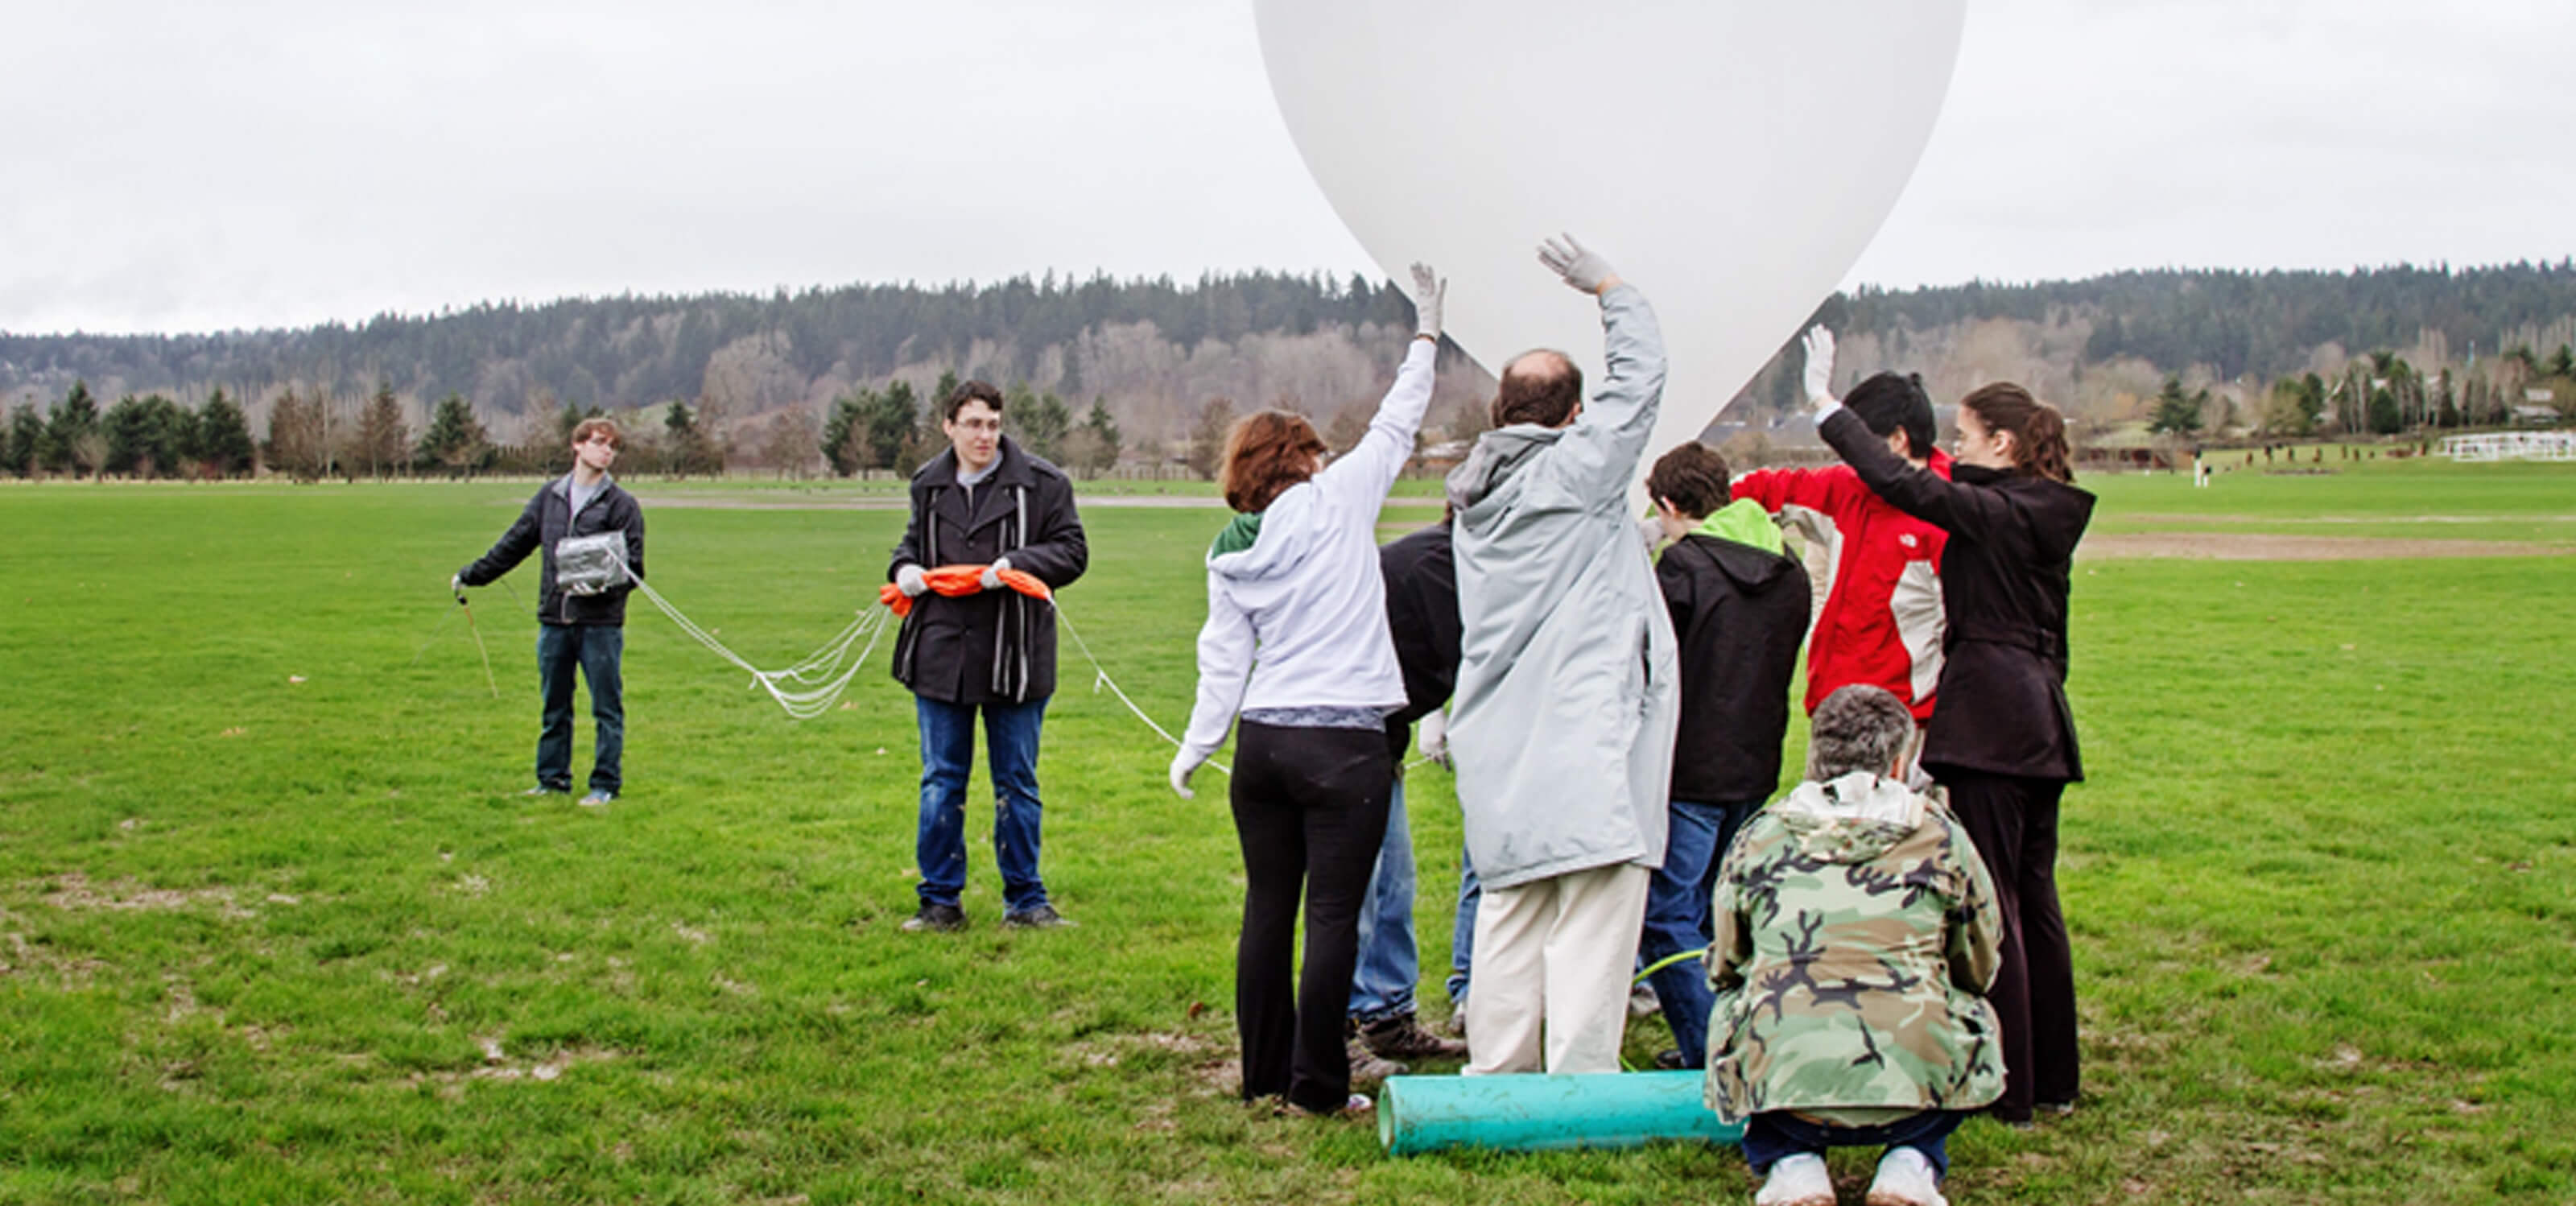 DigiPen students launching a large high-altitude balloon at 60 Acres Park in Redmond